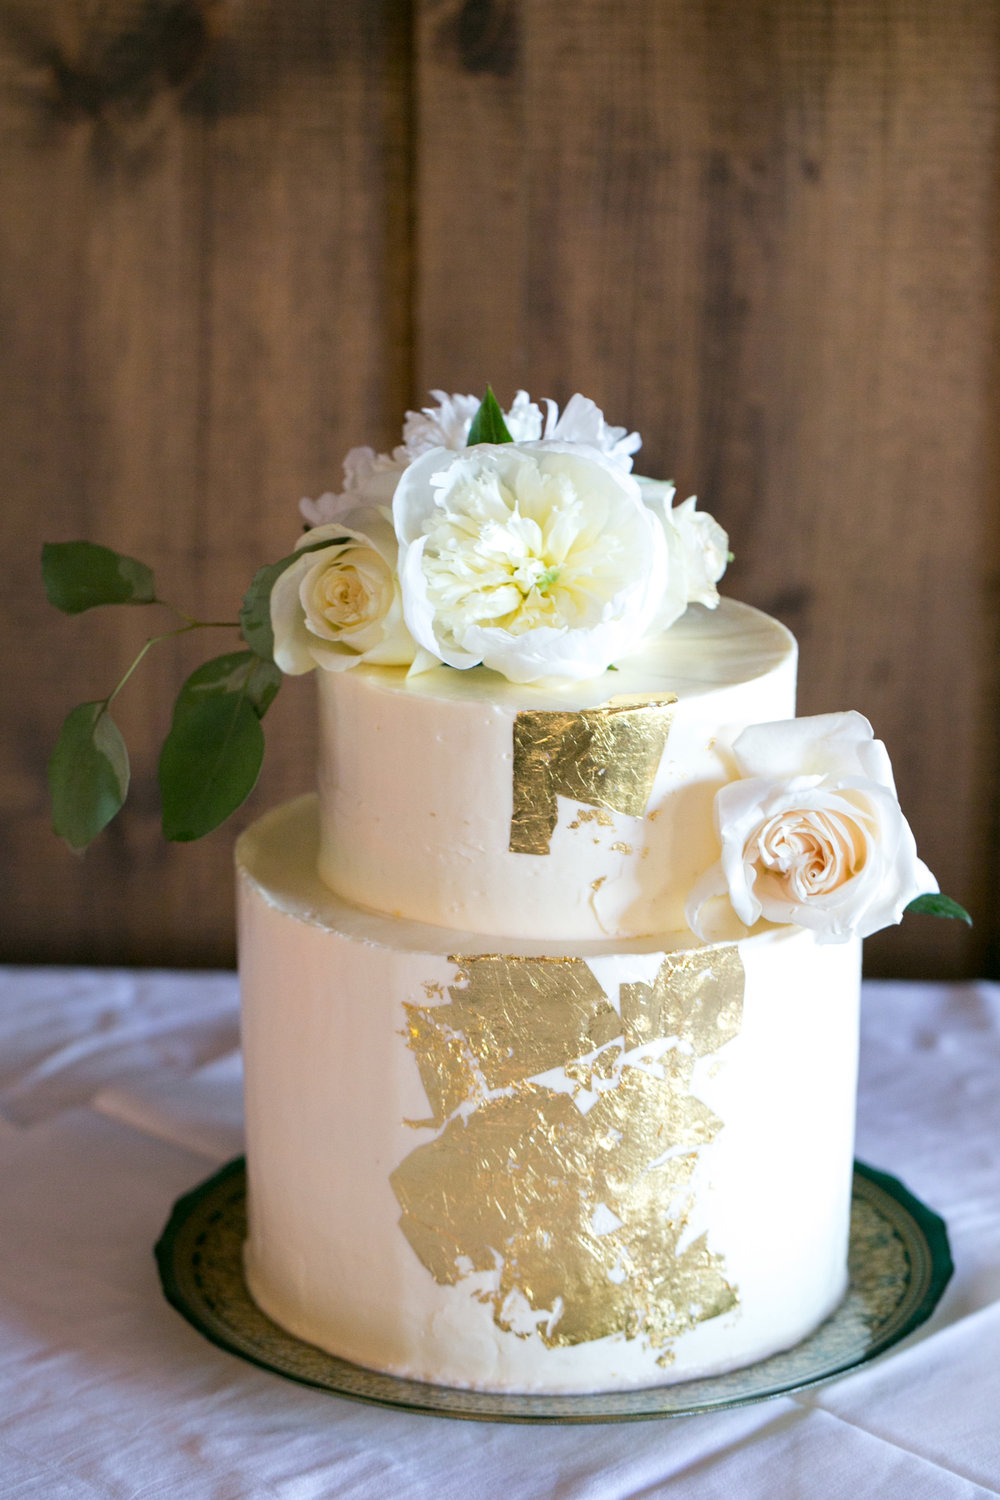 263-gateau-rose-cake-wedding-.jpg